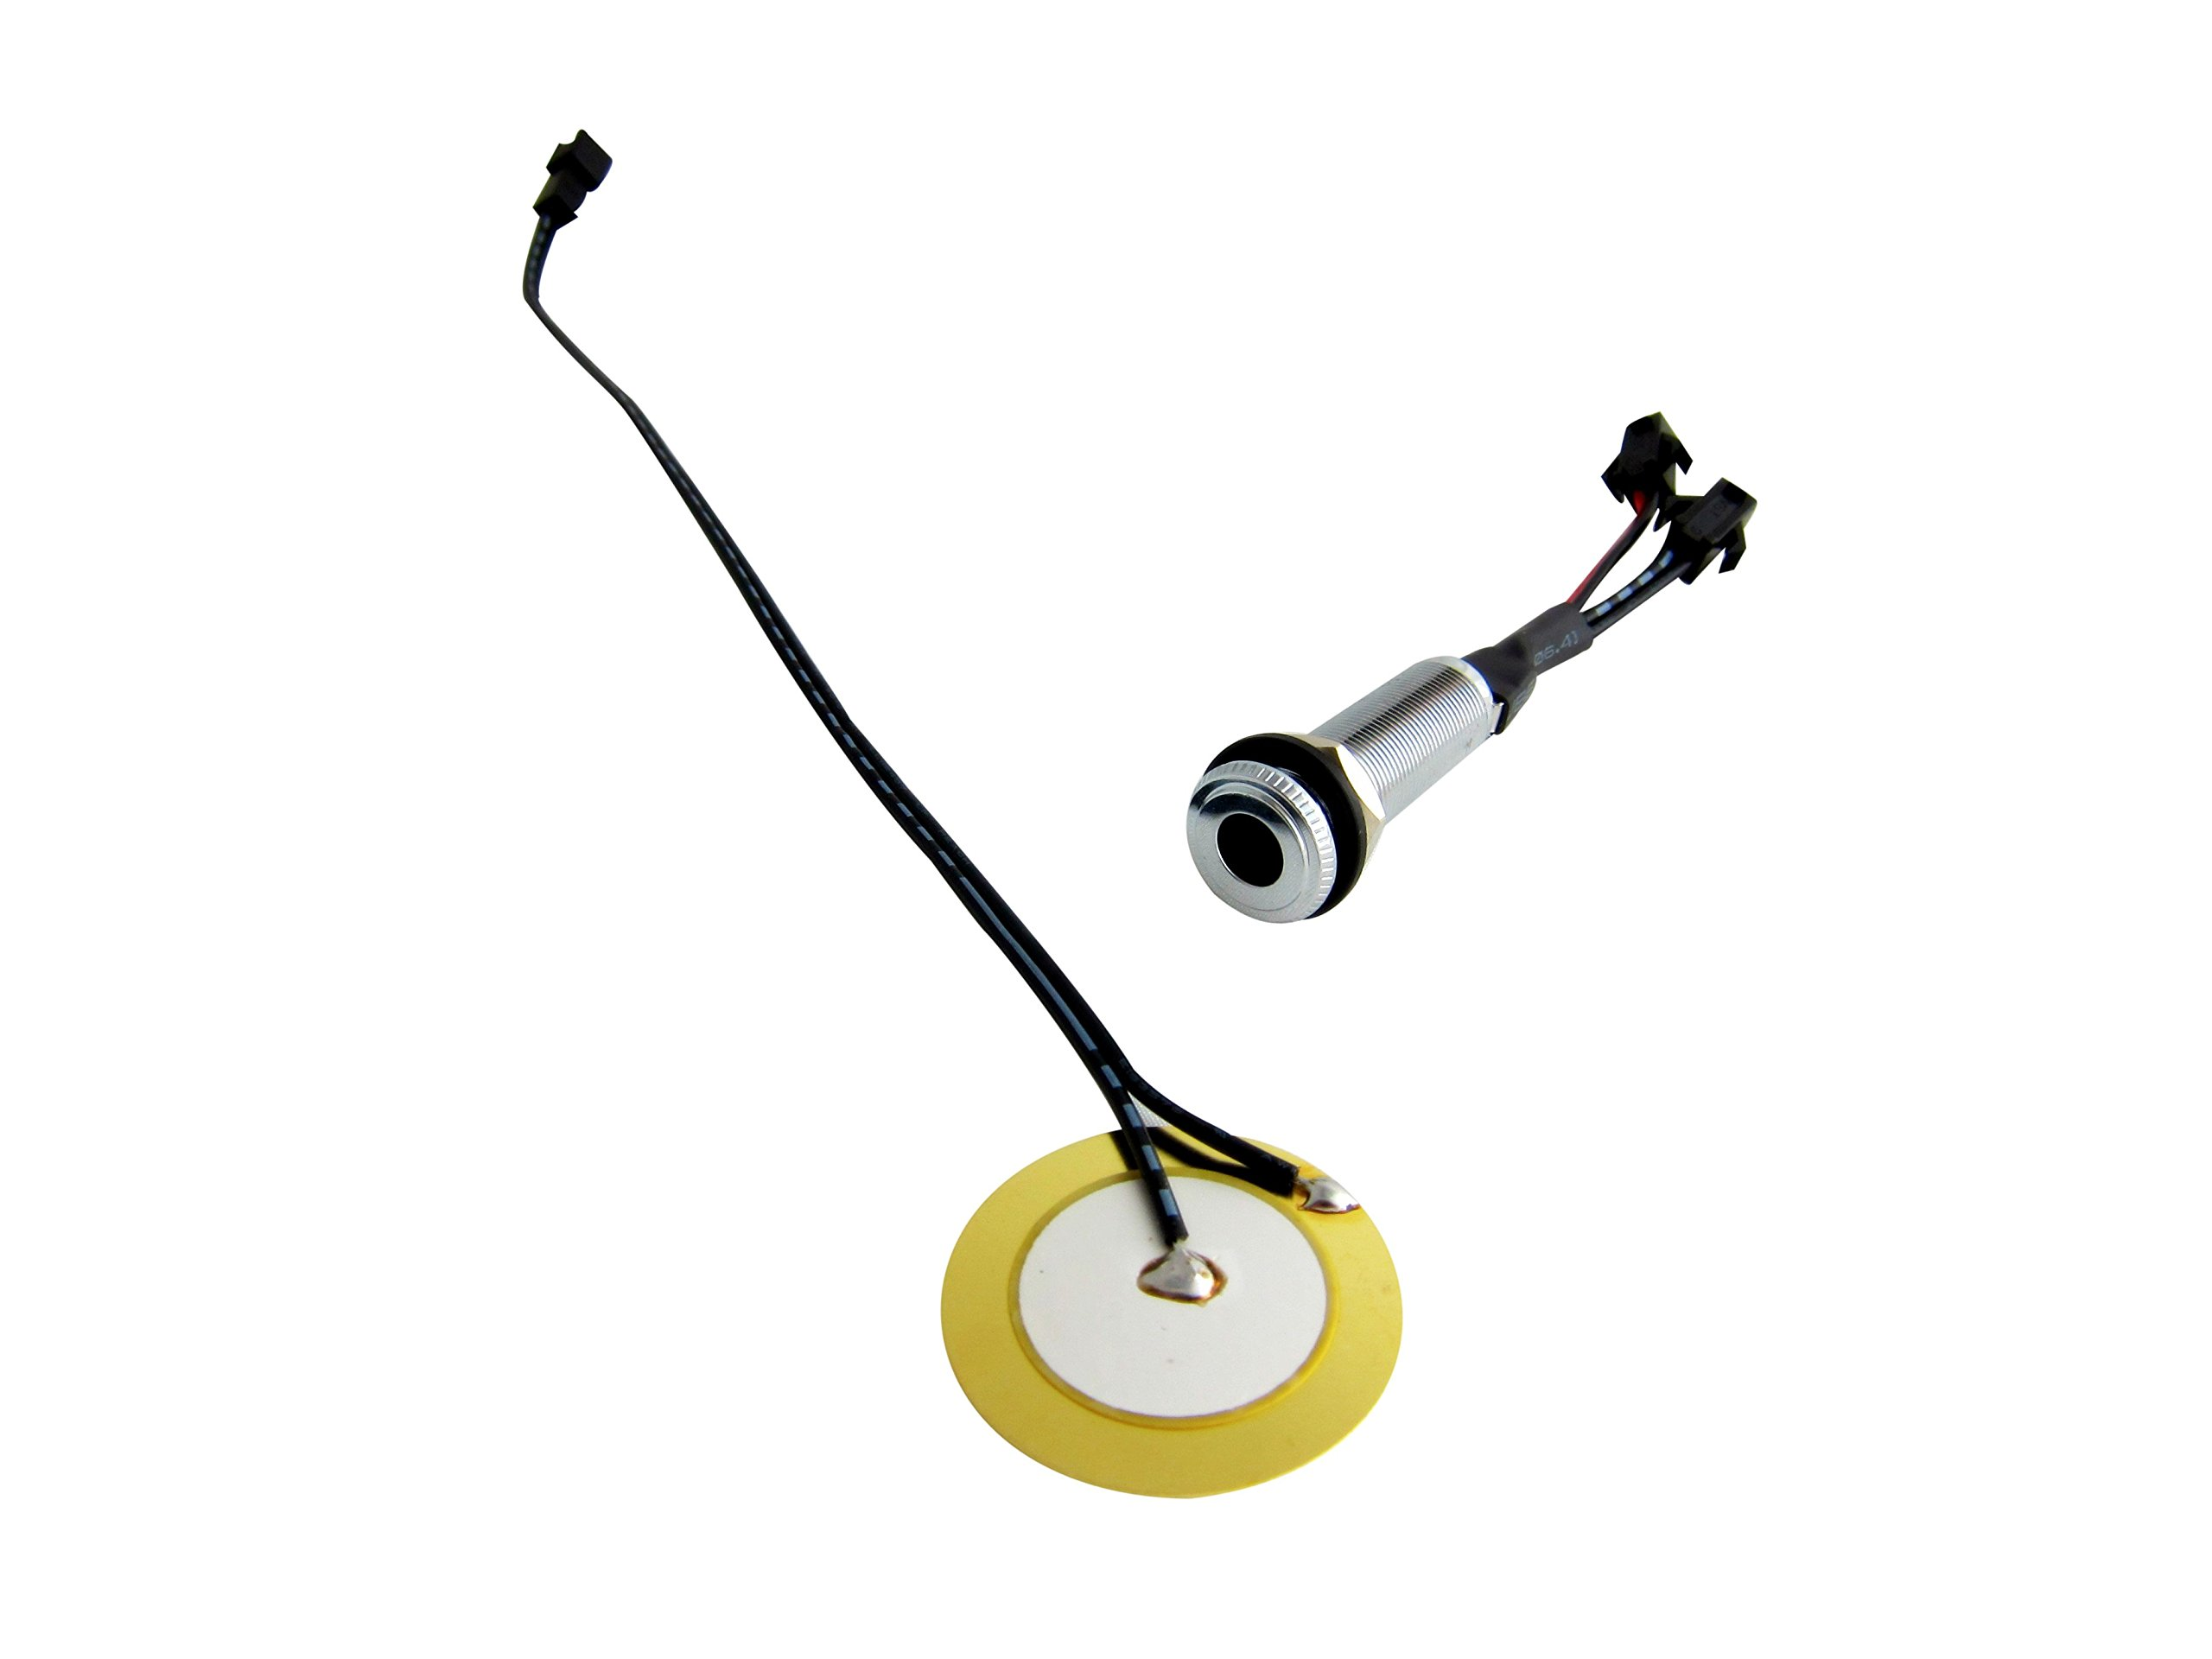 Goedrum Drum Trigger for DIY electronic drum / For Use on Acoustic Wood Drum Shell